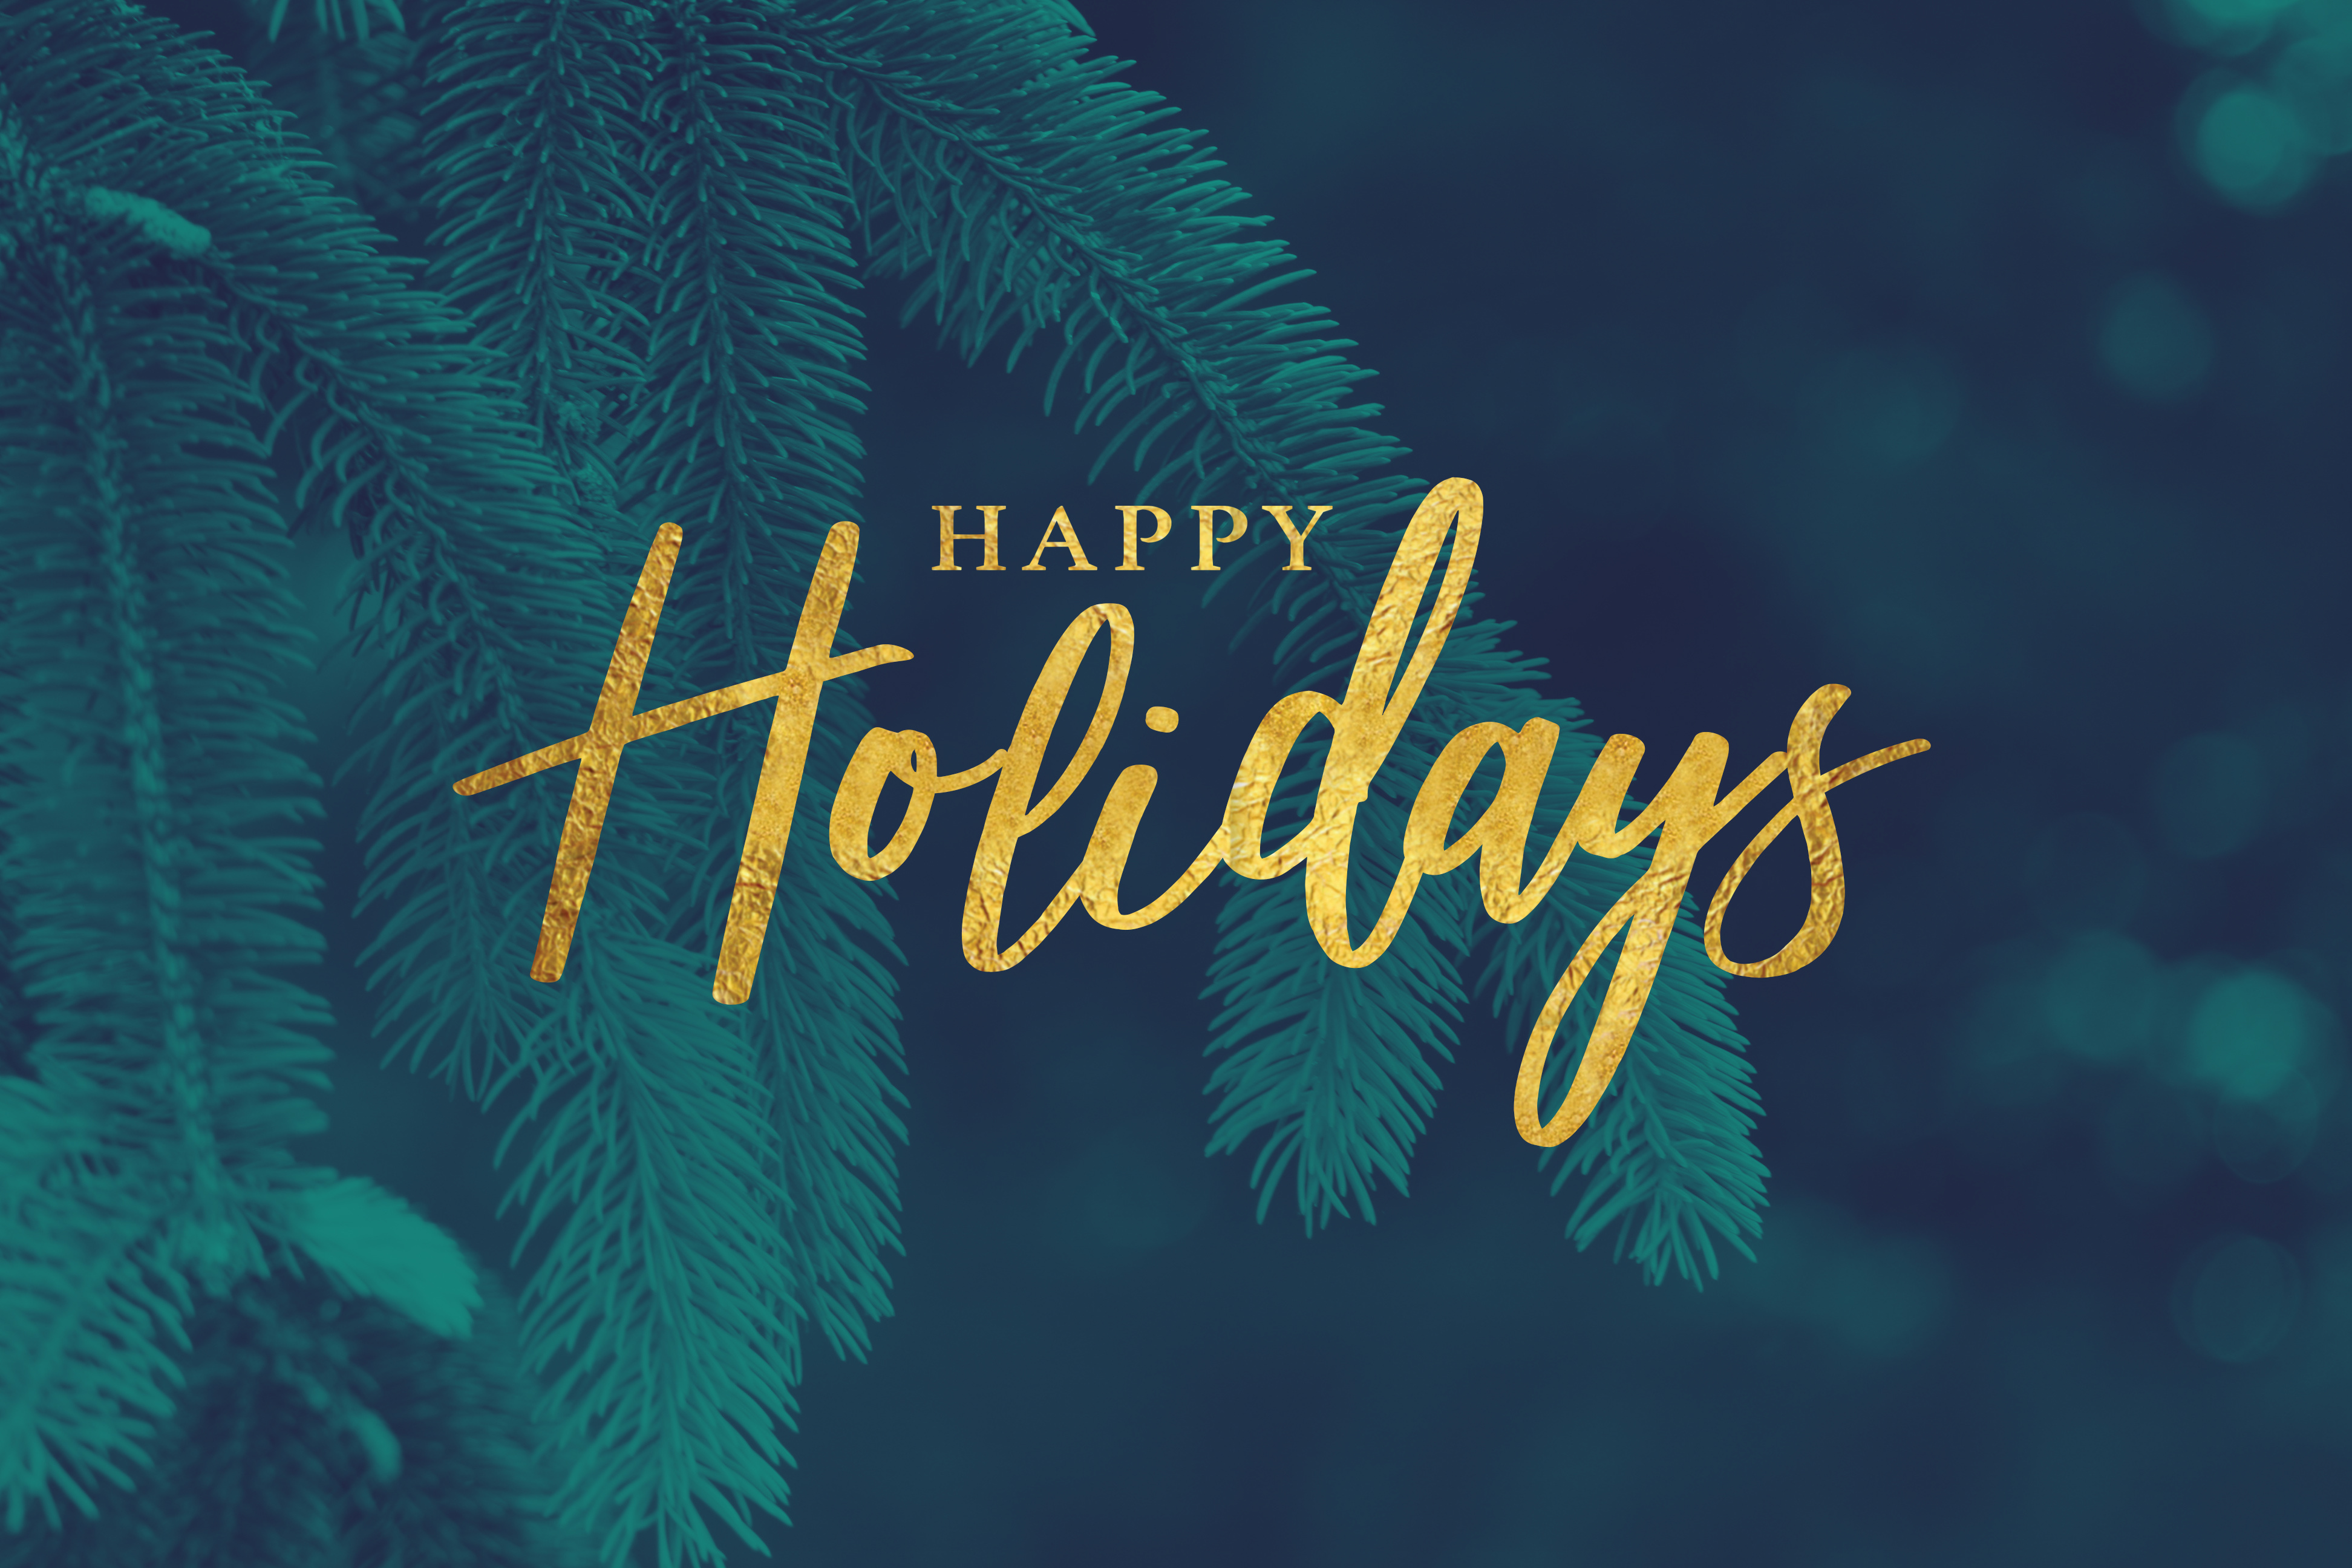 Happy Holidays from Blueline Services - A Comprehensive Background Check and Drug Testing Services Provider! Our Holiday Hours Are Included Here